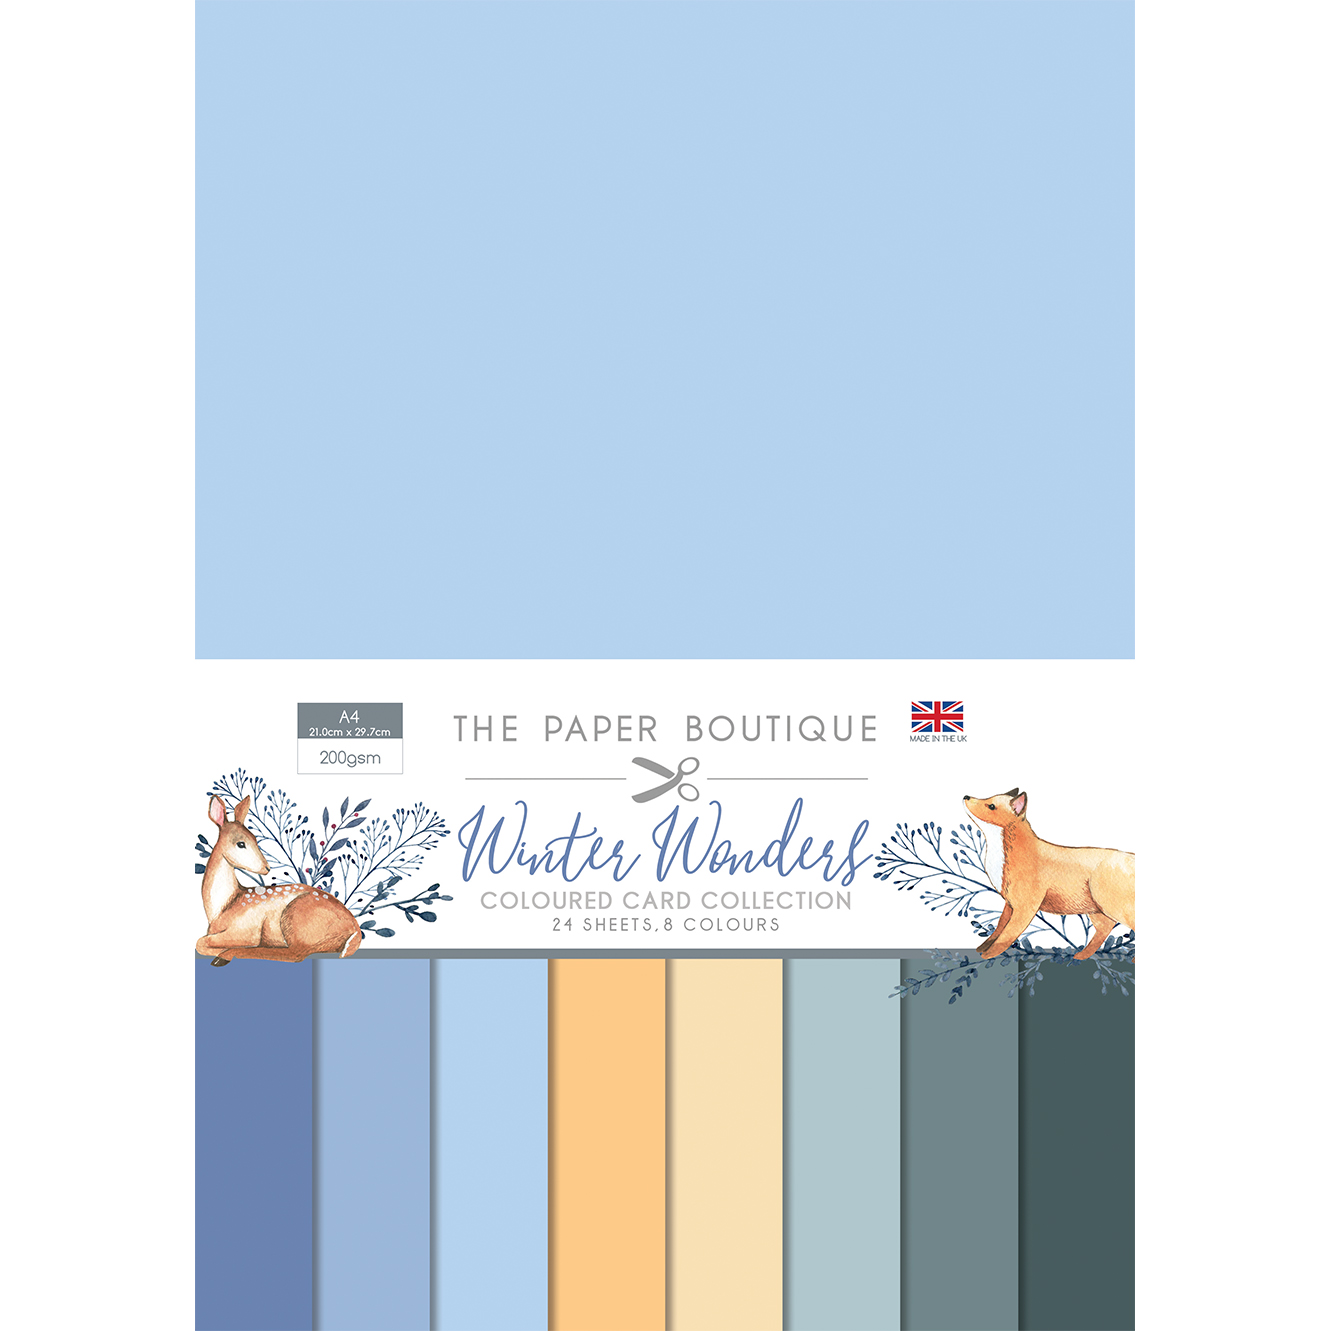 LUCKY DIP – The Paper Boutique A4 Coloured Card Collection